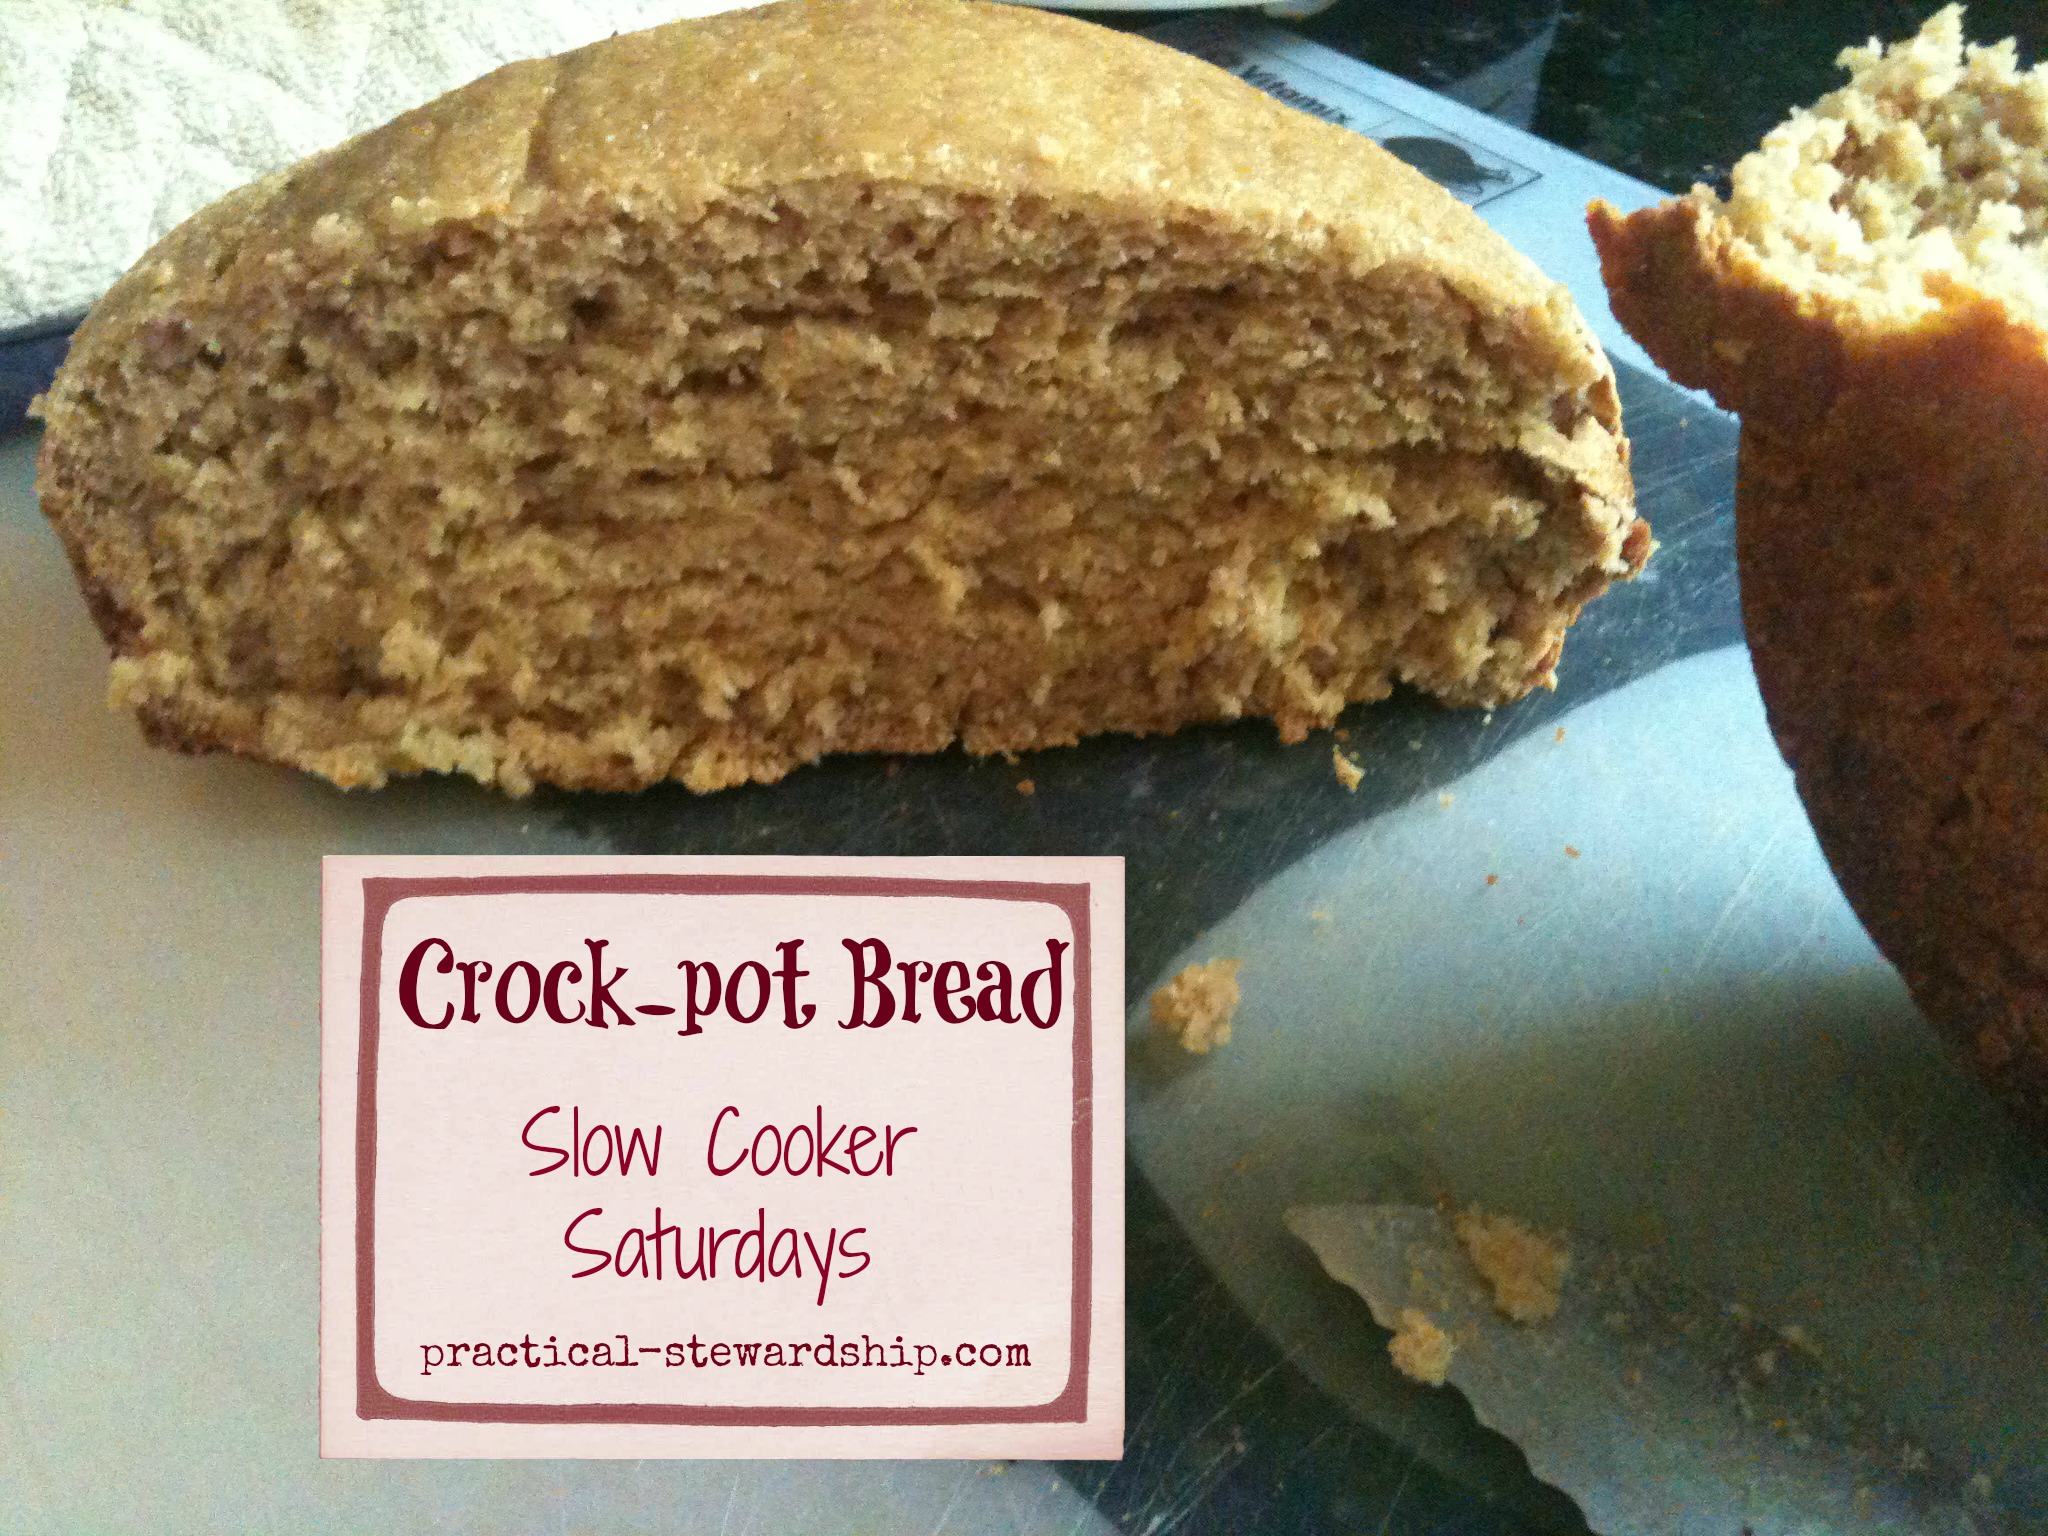 Crock-pot Half Sourdough Bread @ practical-stewardship.com